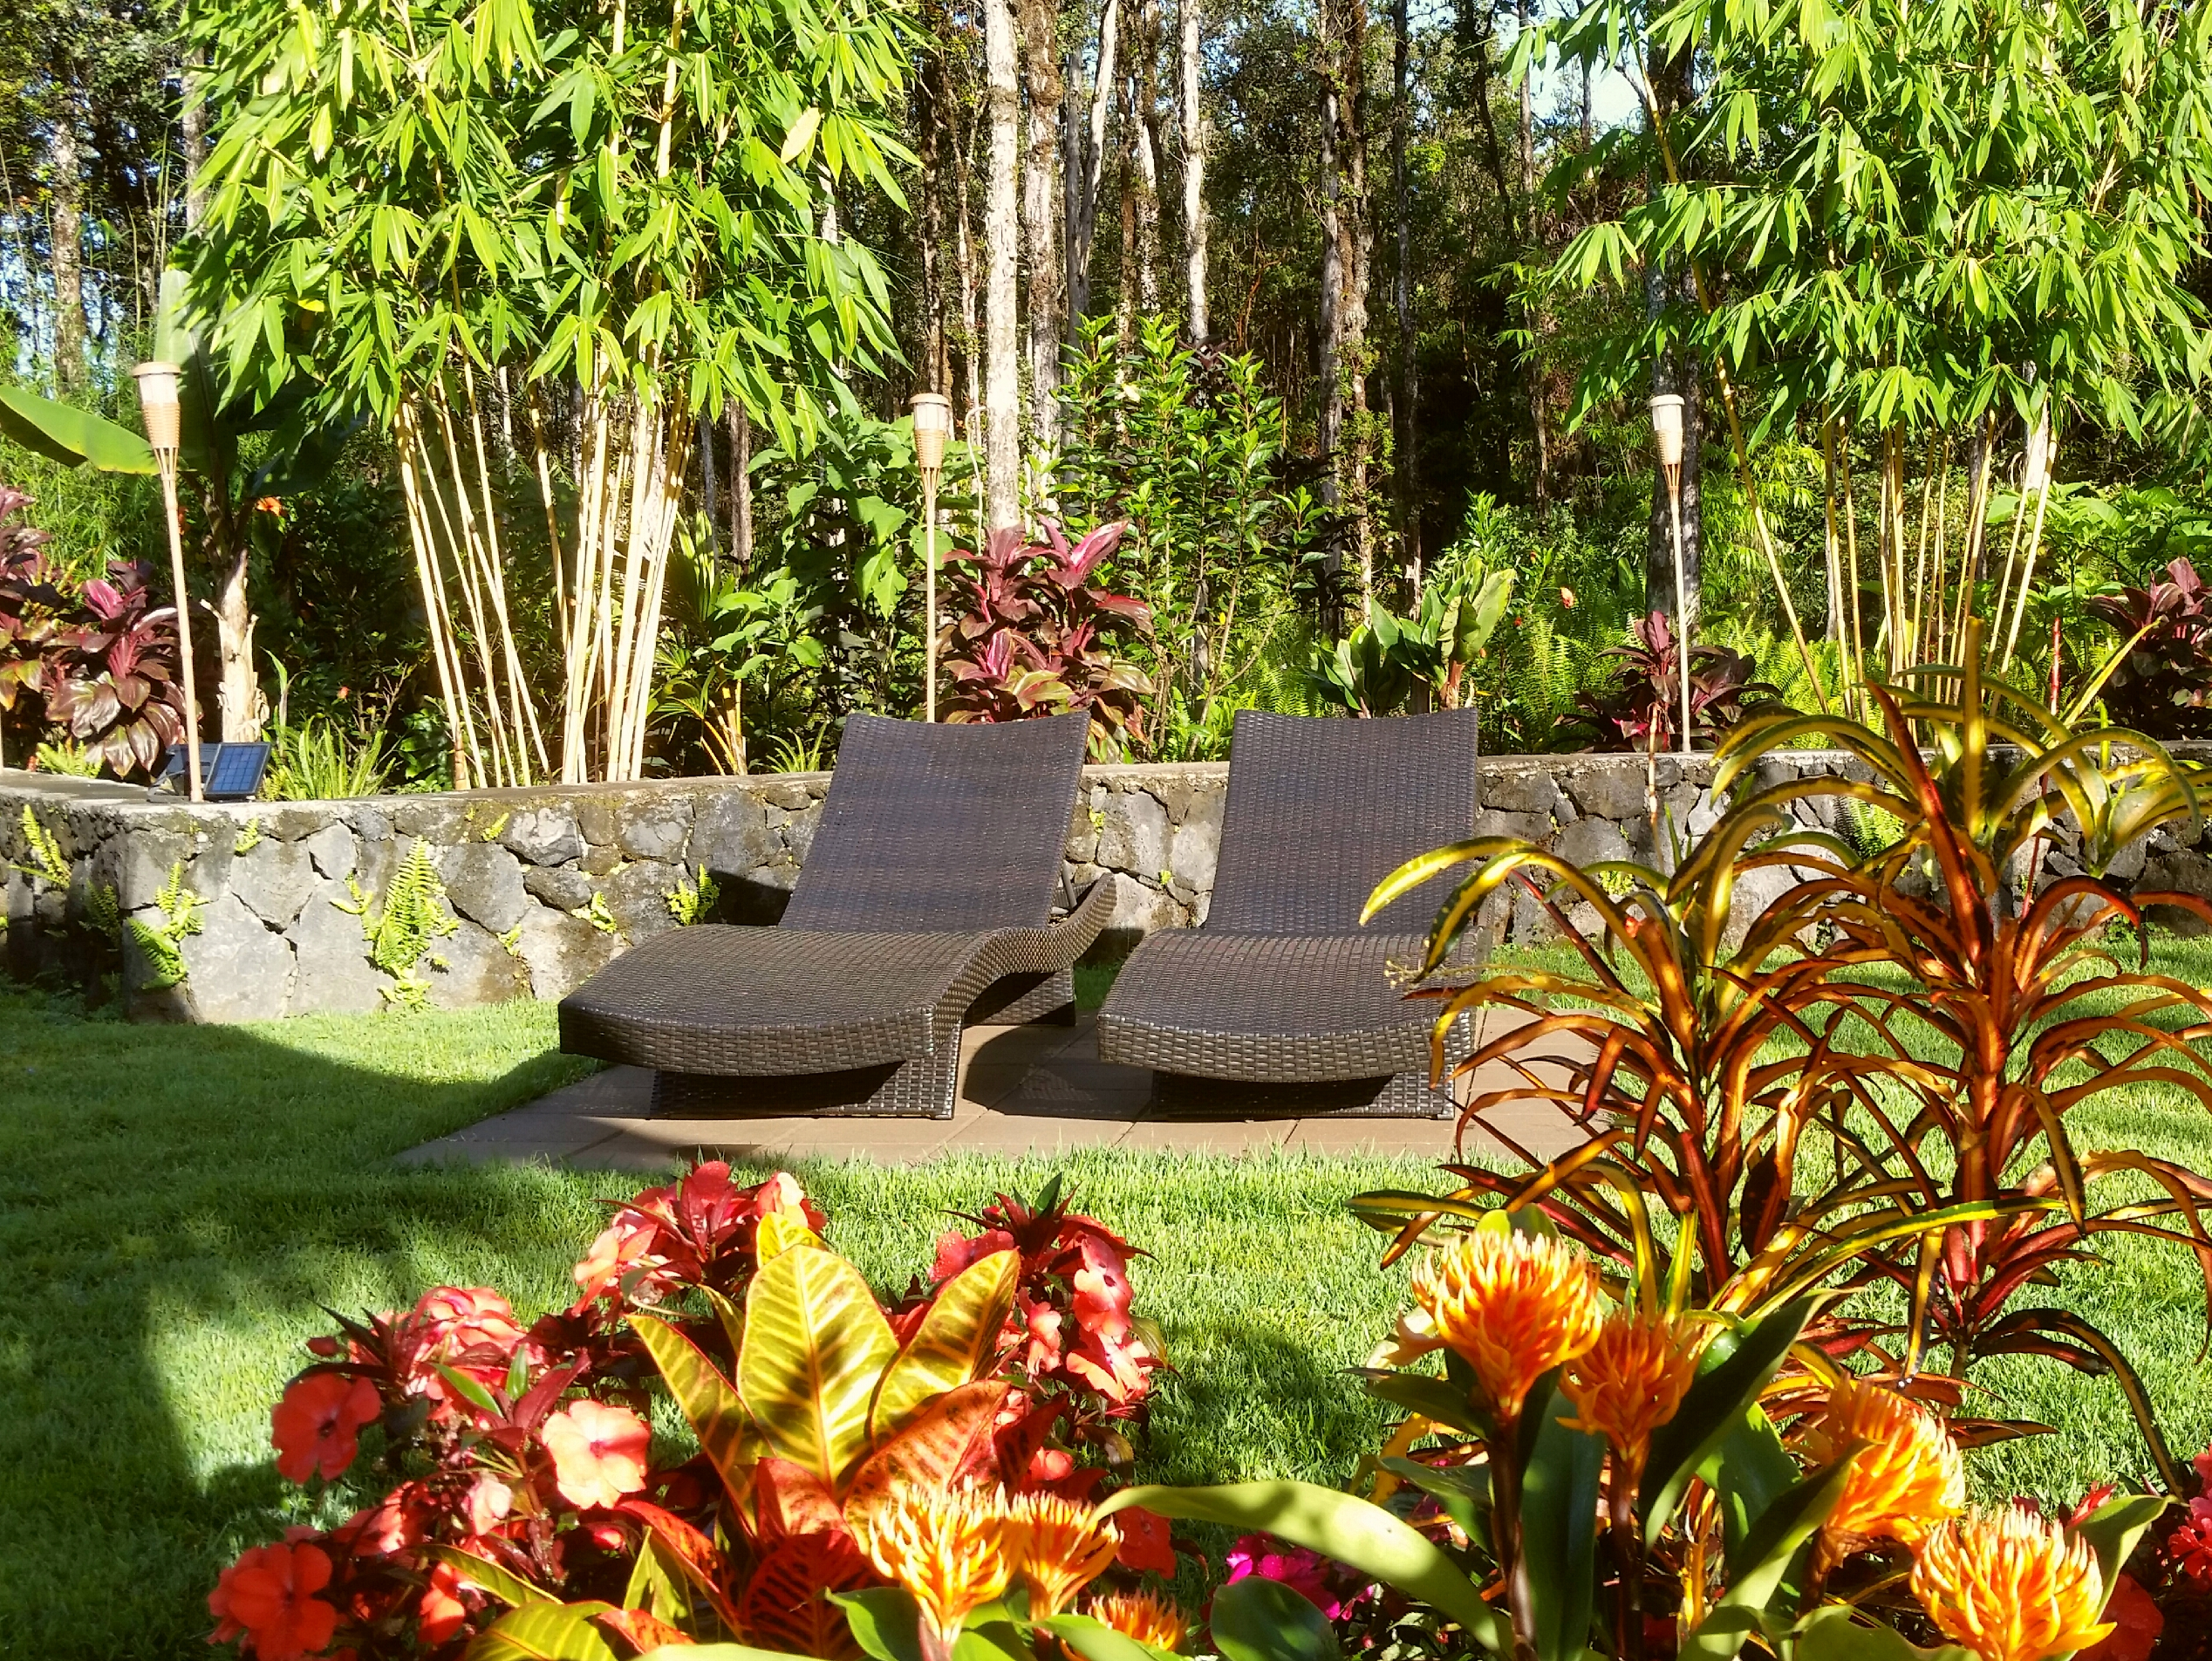 volcano mountain retreat b&b vmr big island hawaii garden lounge chairs